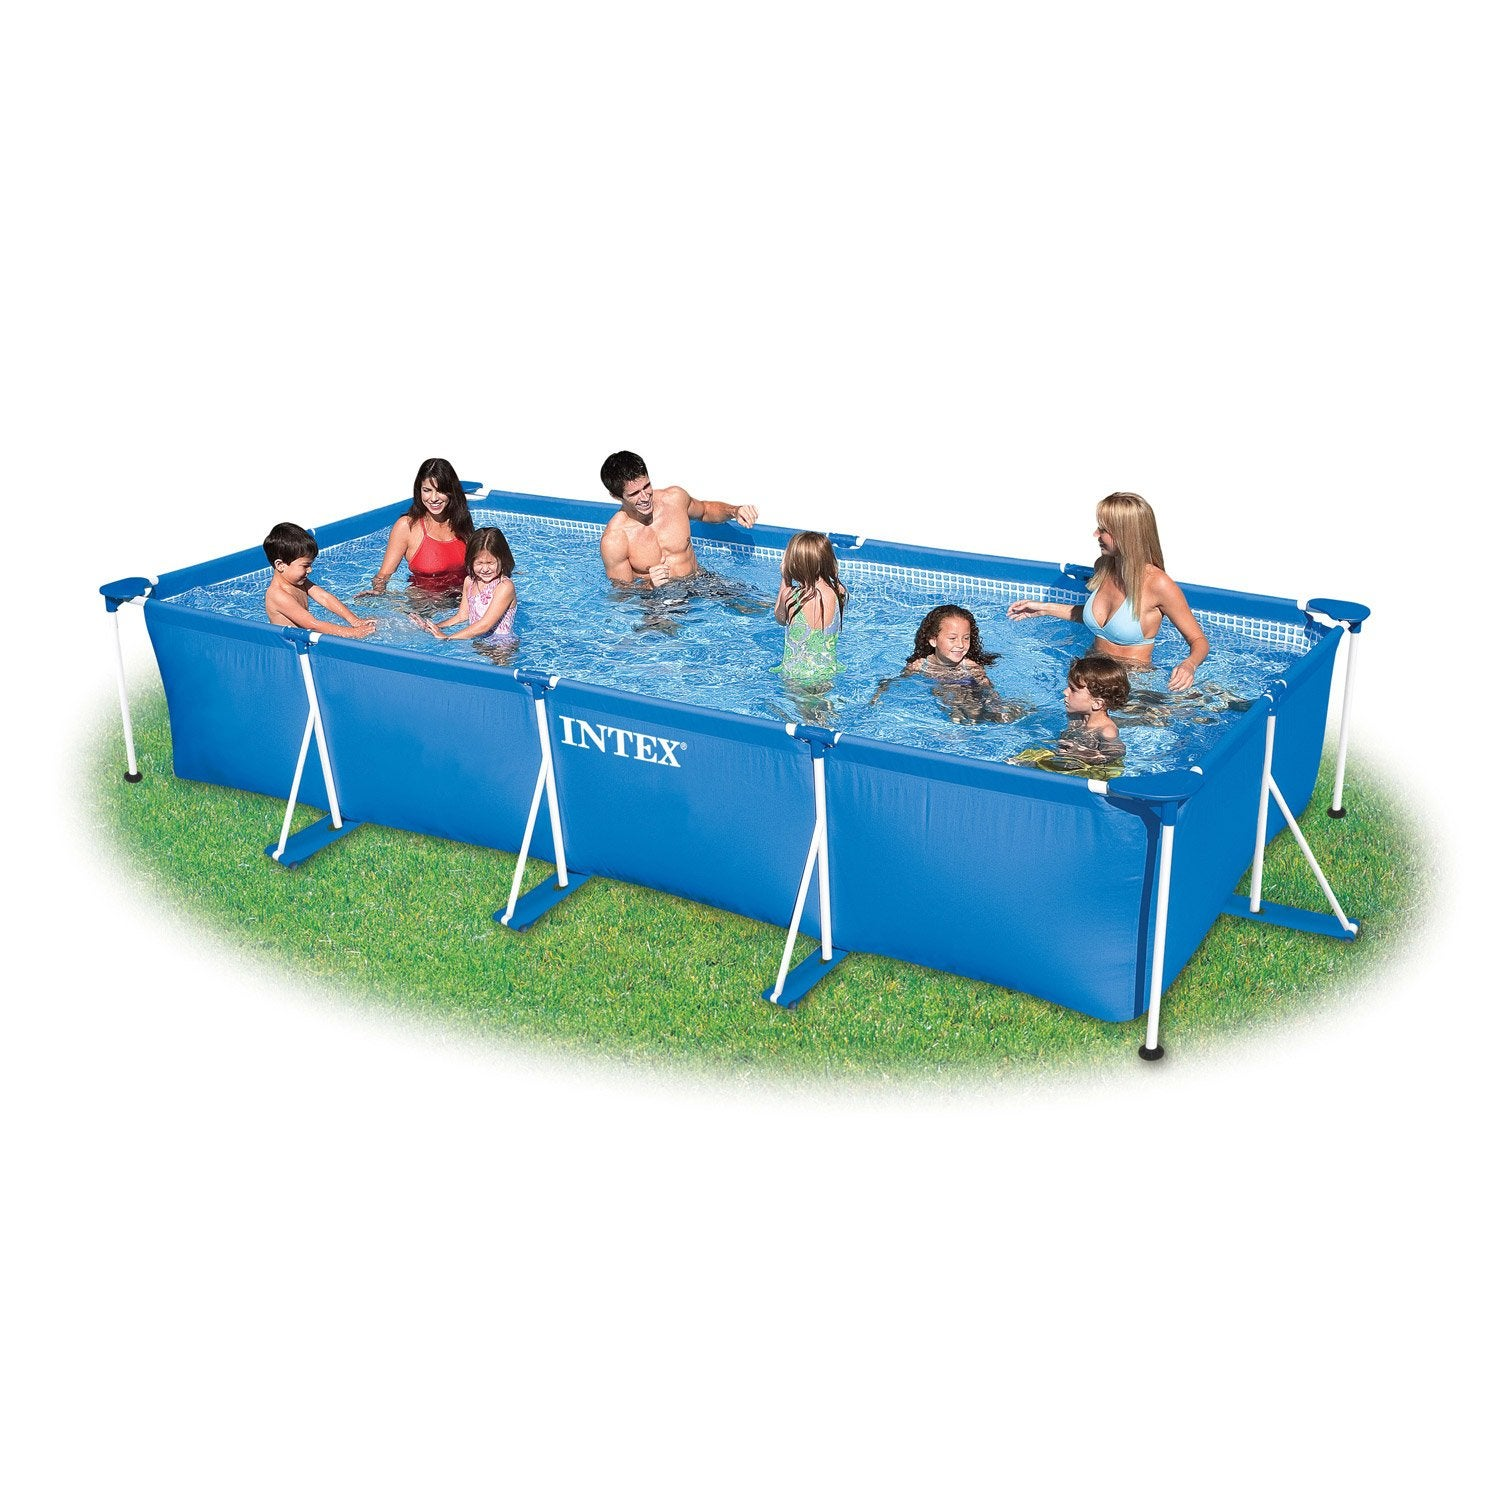 Piscine hors sol autoportante tubulaire intex l x l for Piscine hors sol autoportee